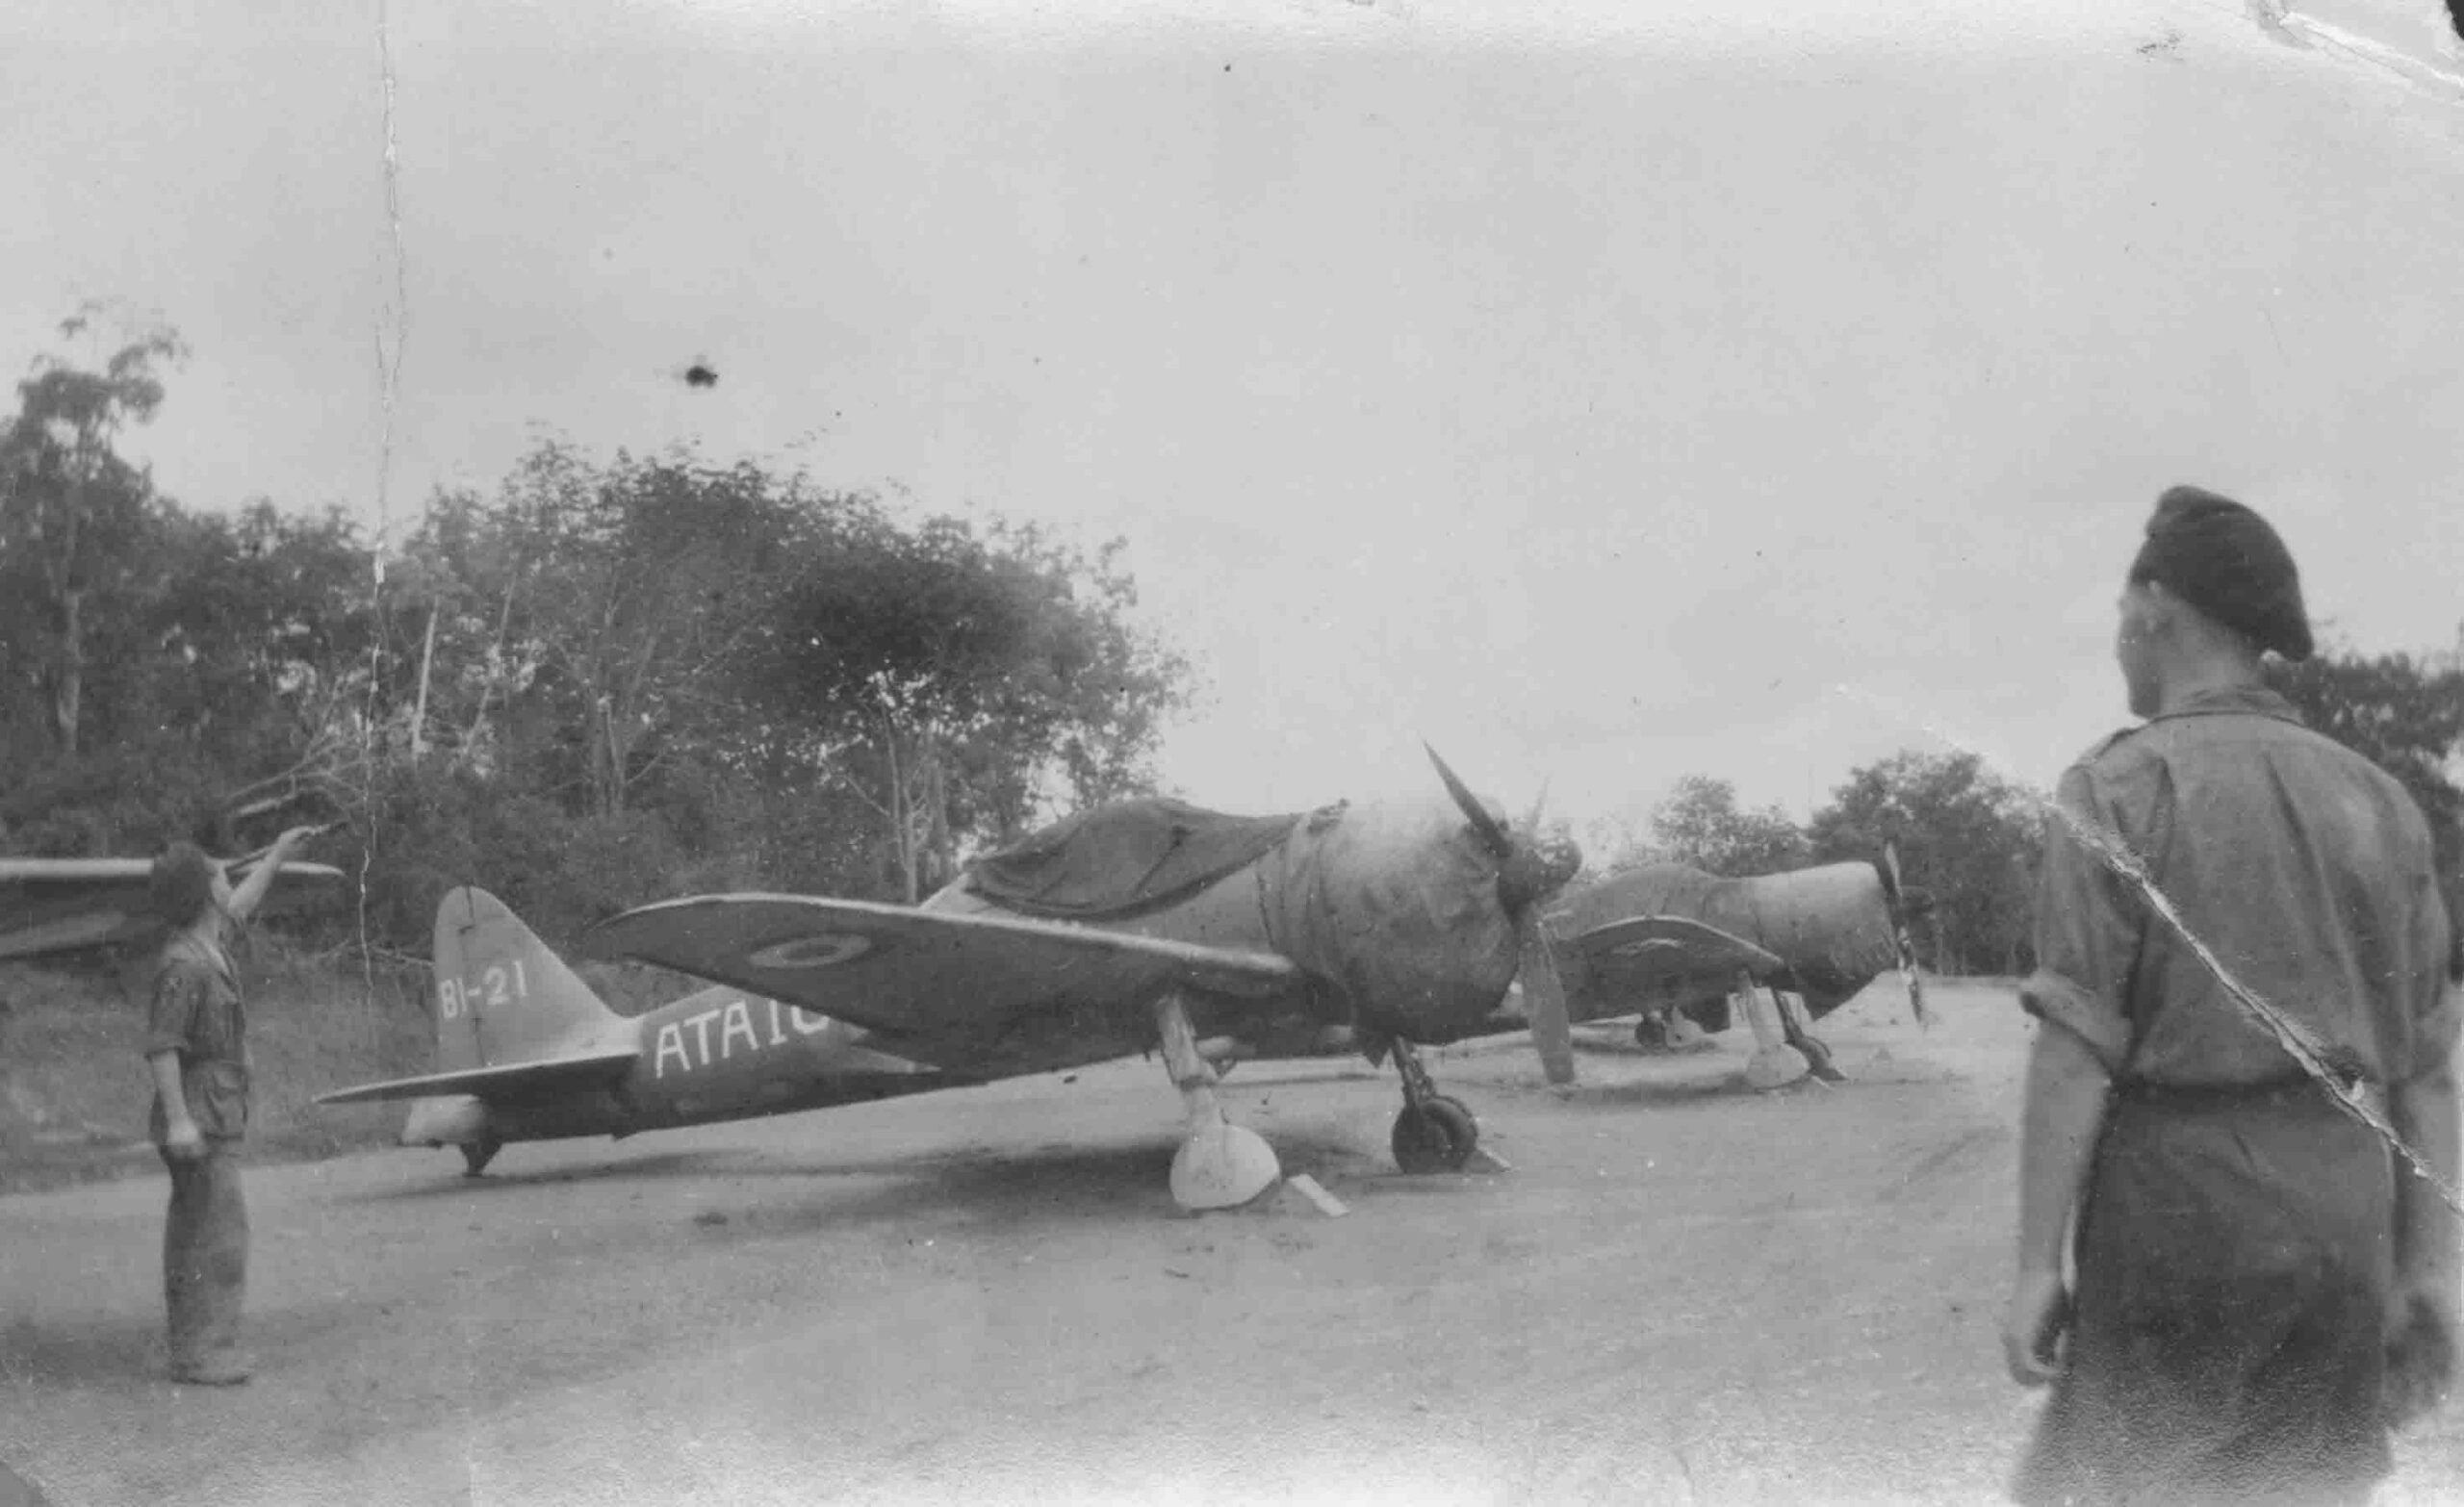 PC97/112/1s Two airmen near line up of  captured Zeros in RAF markings. Malaya, 1946